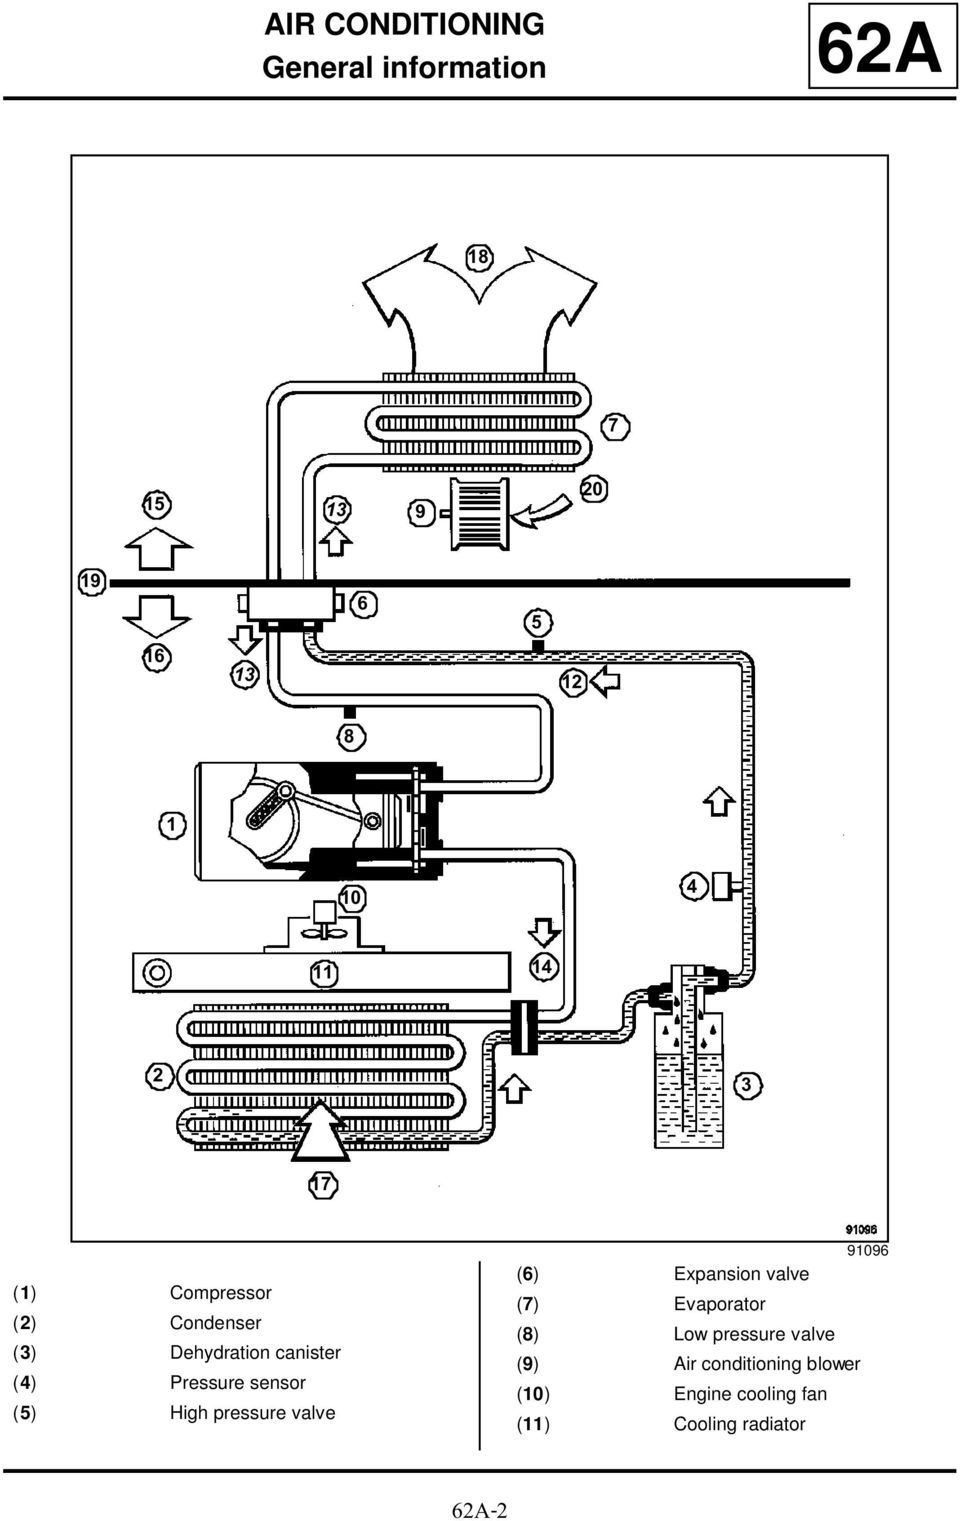 Technical Note 6001a Tty Air Conditioning Pdf General Engine Cooling Diagram High Pressure Valve 91096 6 Expansion 7 Evaporator 8